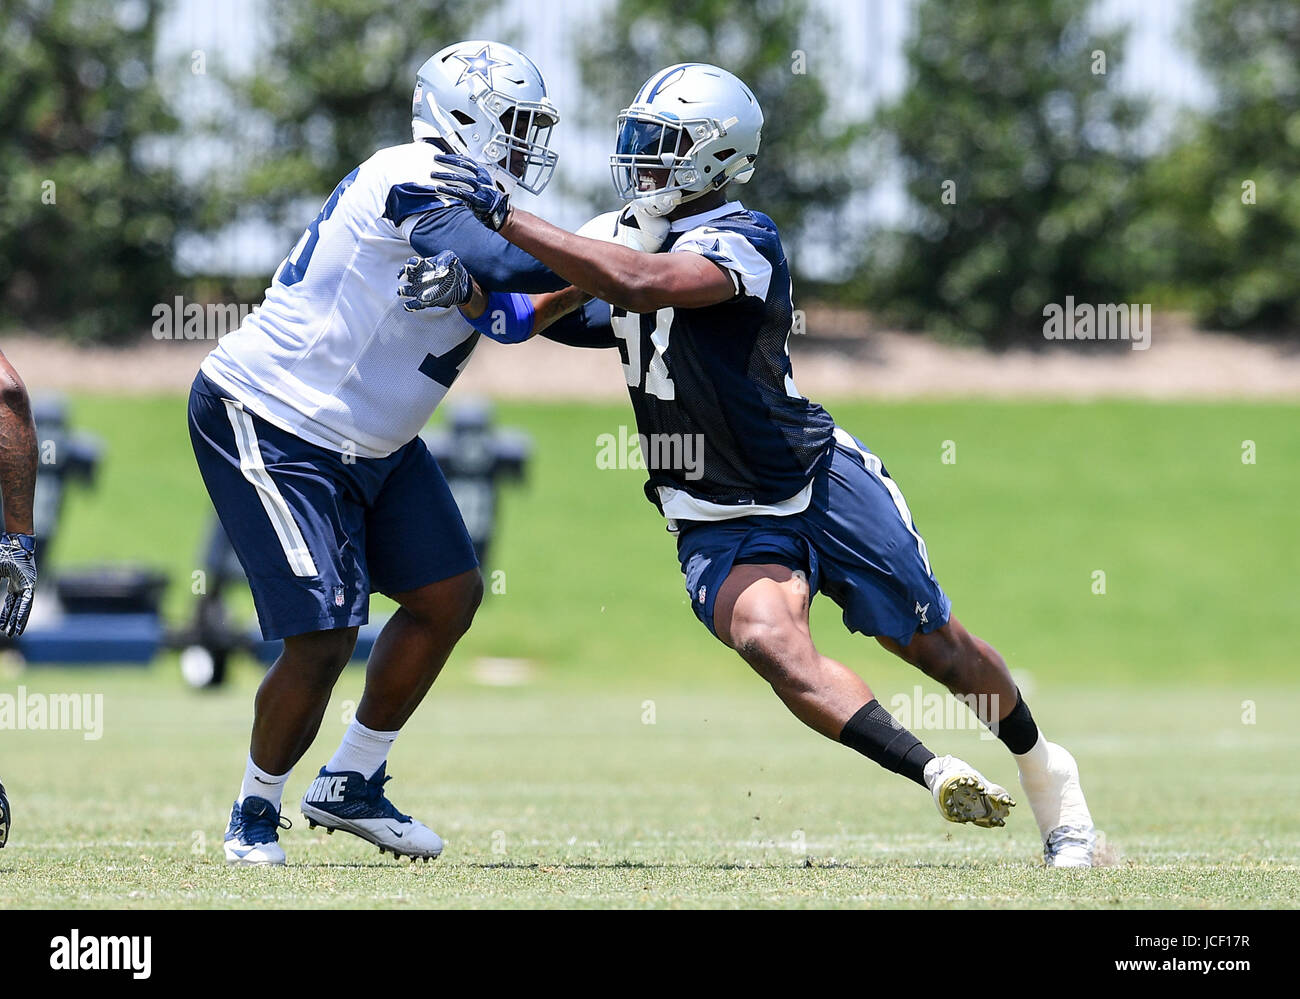 4e928a8ca ... Jersey Dallas Cowboys offensive lineman Kadeem Edwards (78) battles  against Dallas Cowboys defensive end Taco .